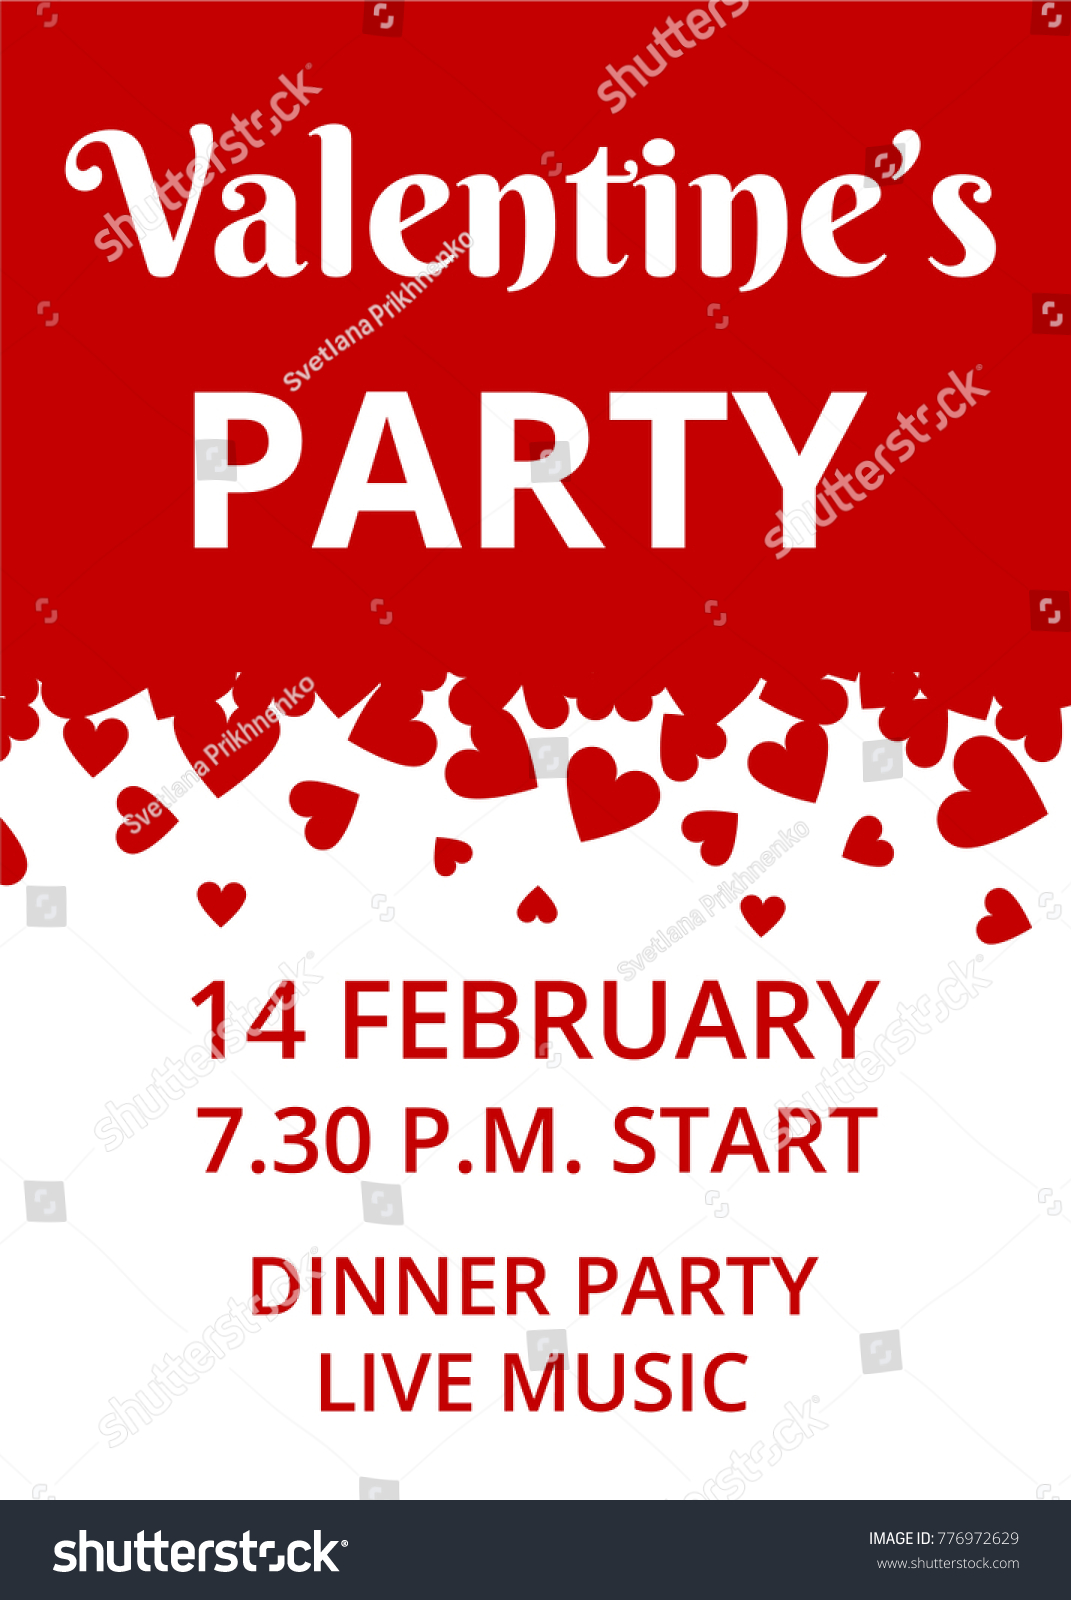 Valentines Day Party Invitation Card Hearts Stock Vector (Royalty ...